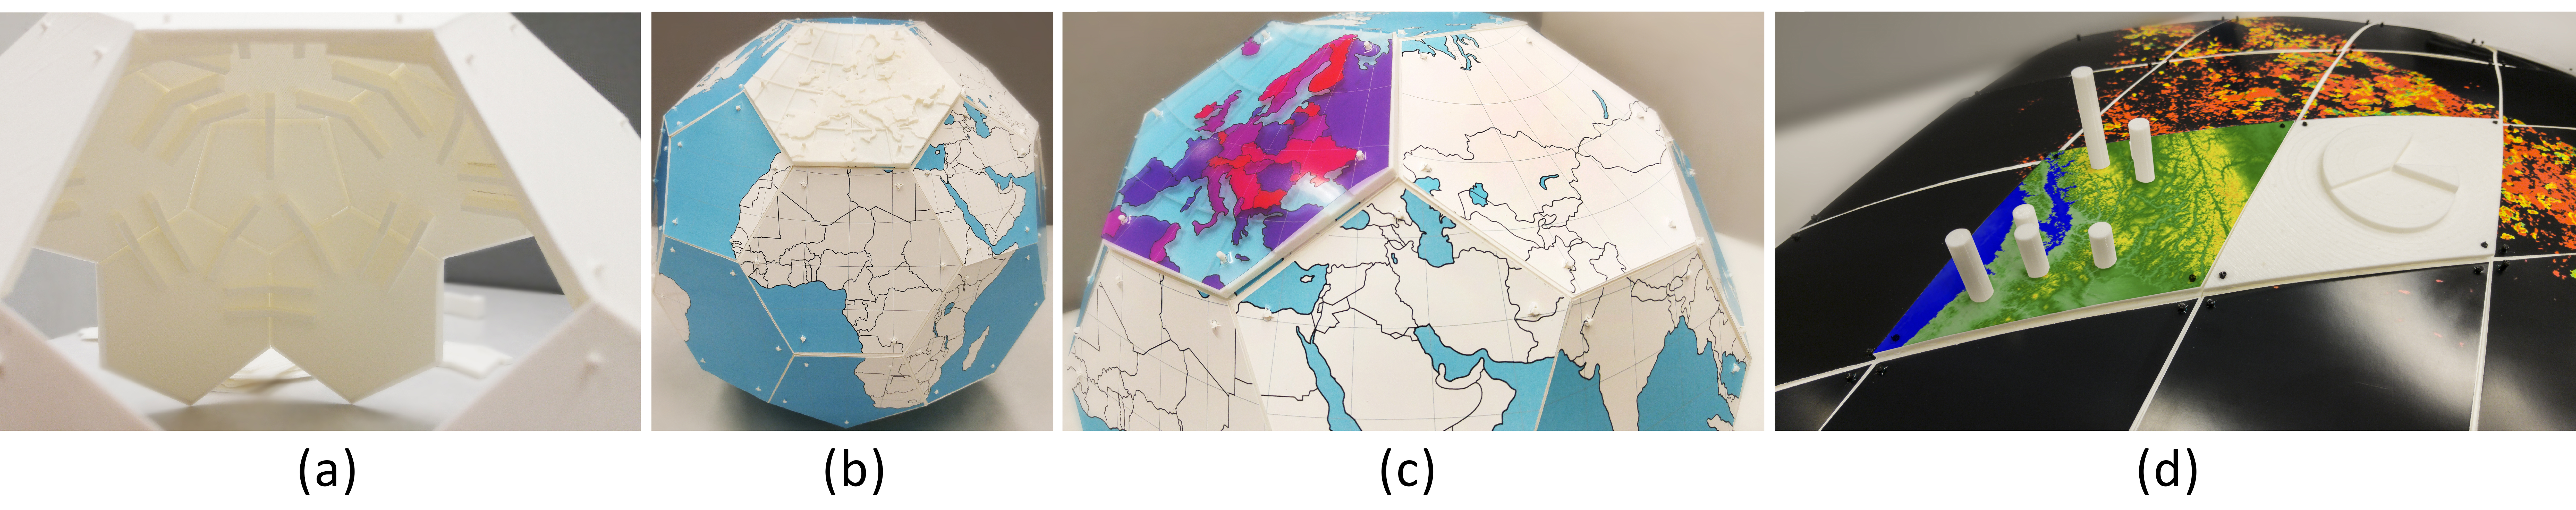 (a)Constructing a model of discrete globe on which data sets with different styles can be attached (b), (c). Our method can produce models at different scales as illustrated in (d).